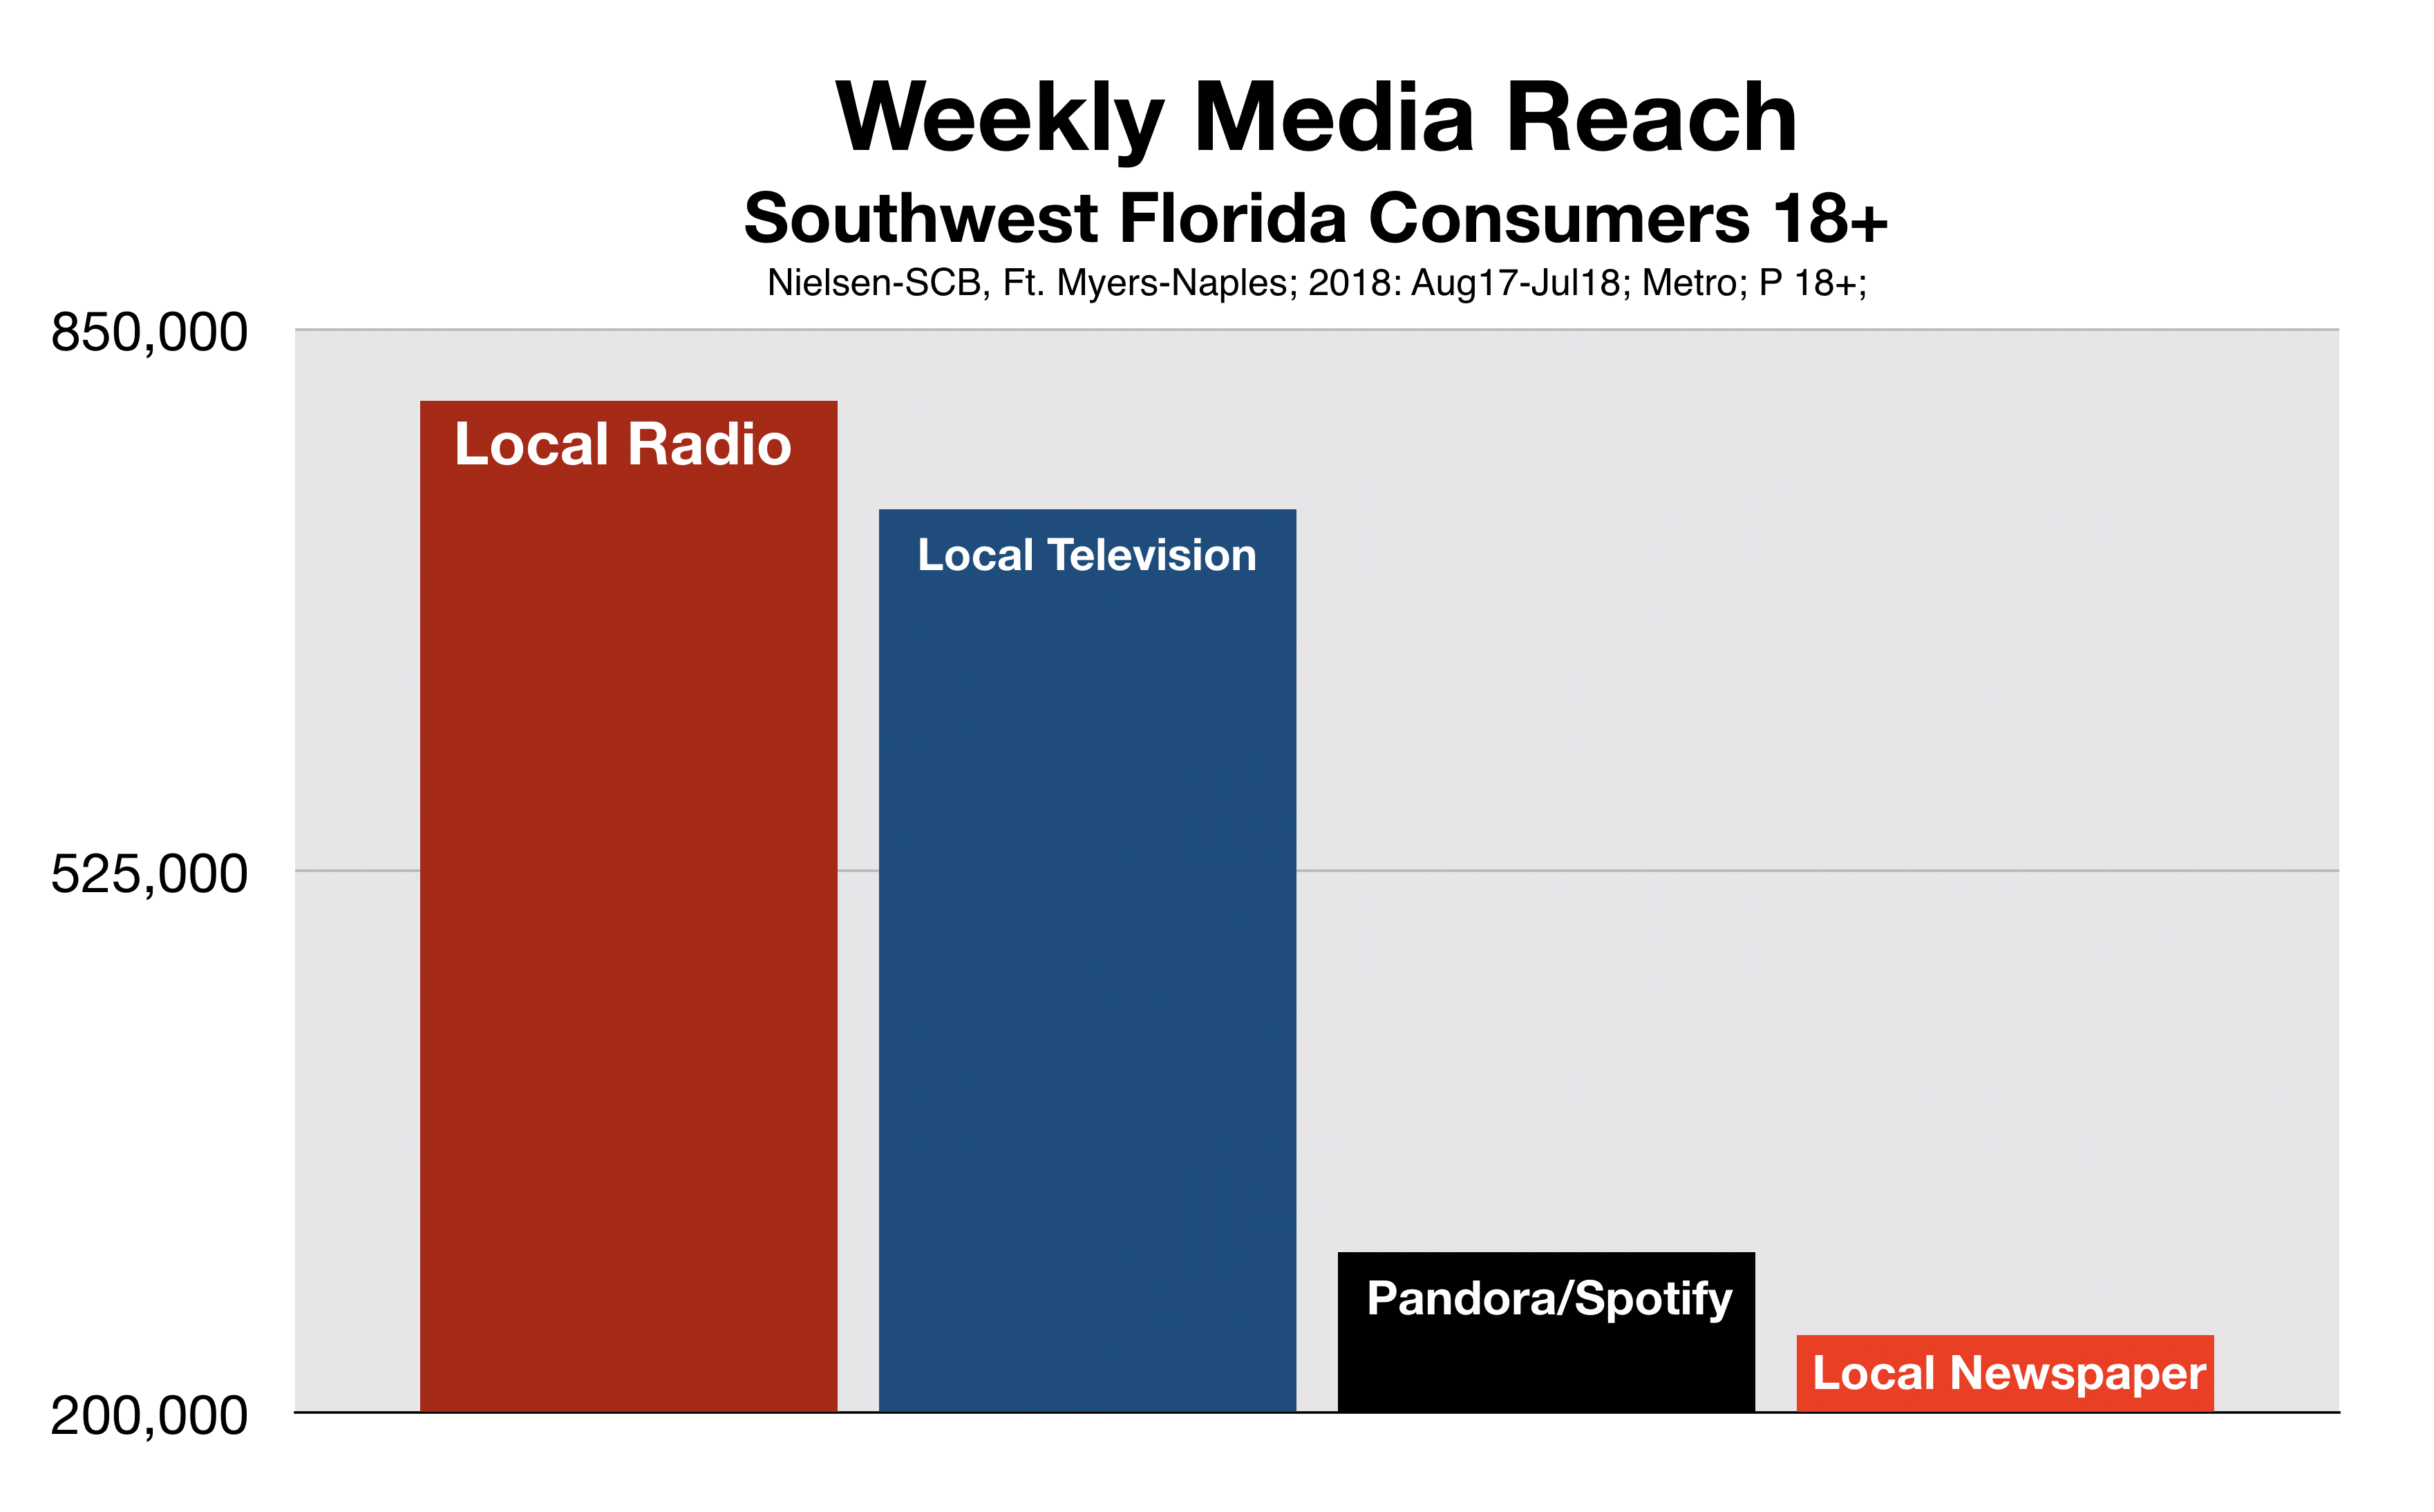 Advertise In Fort Myers Total Reach Including Pandora/Spotify